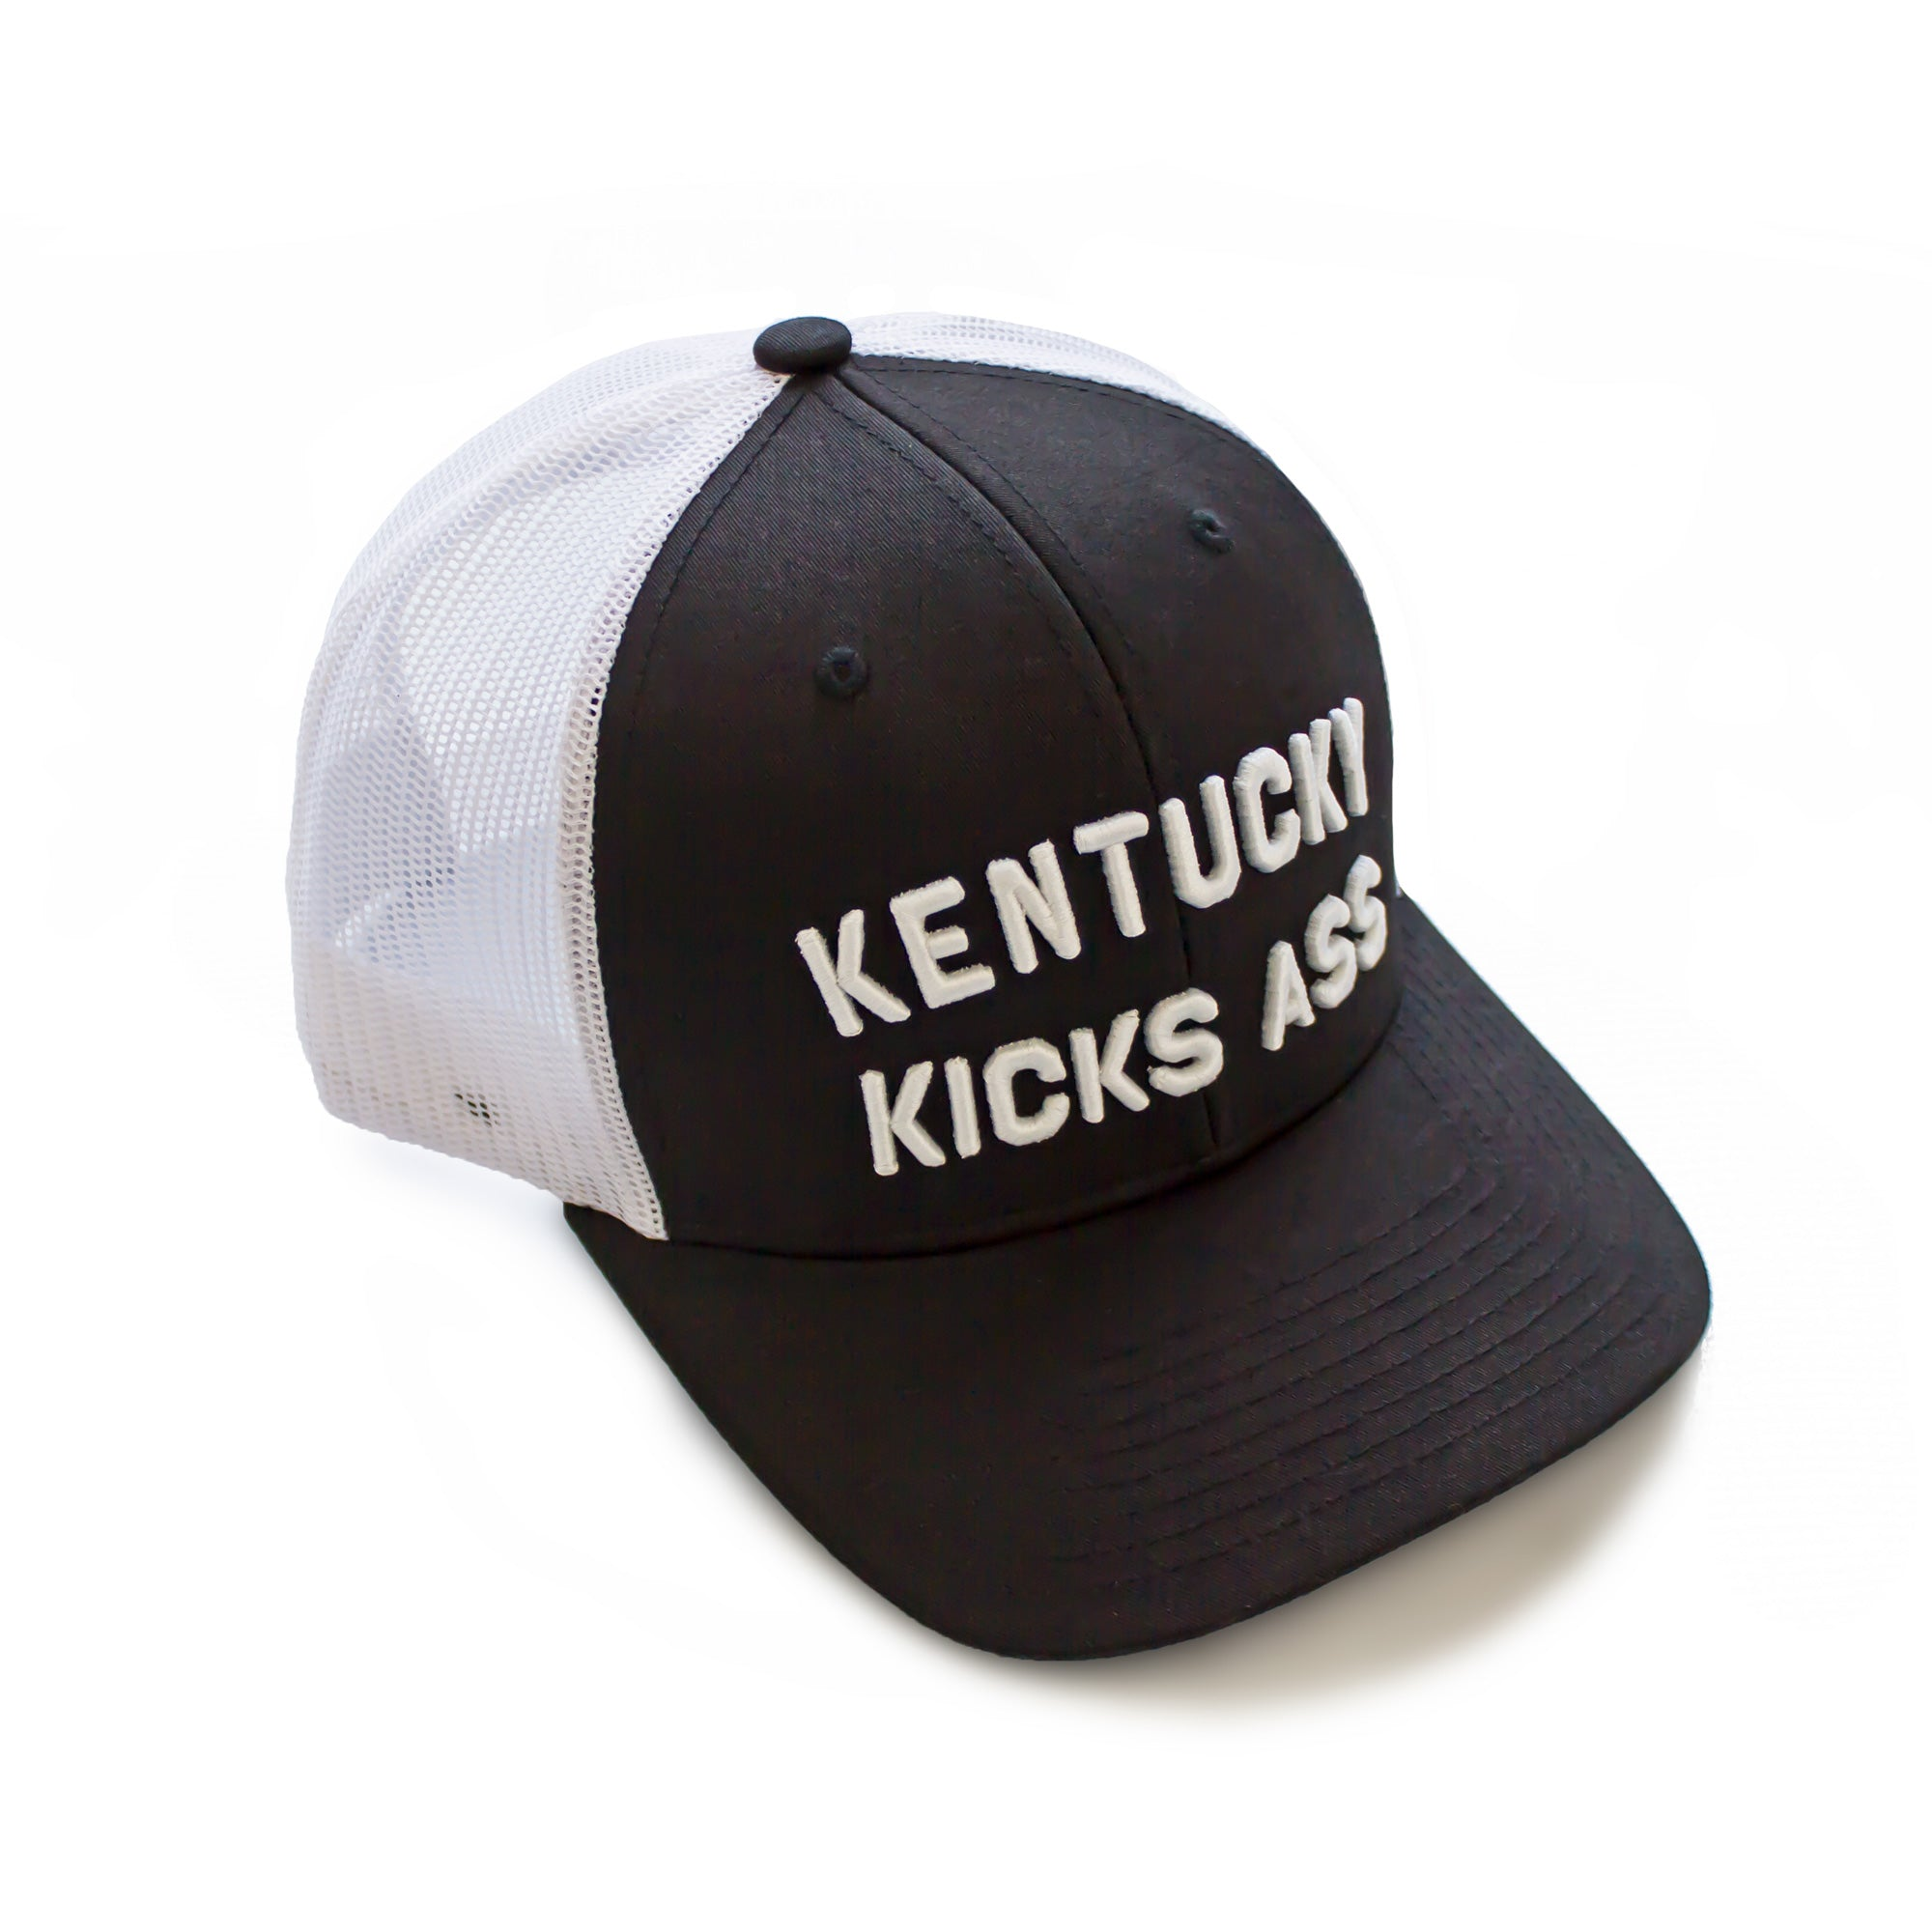 Kentucky Kicks Ass Trucker Hat (Black)-Hat-KY for KY Store